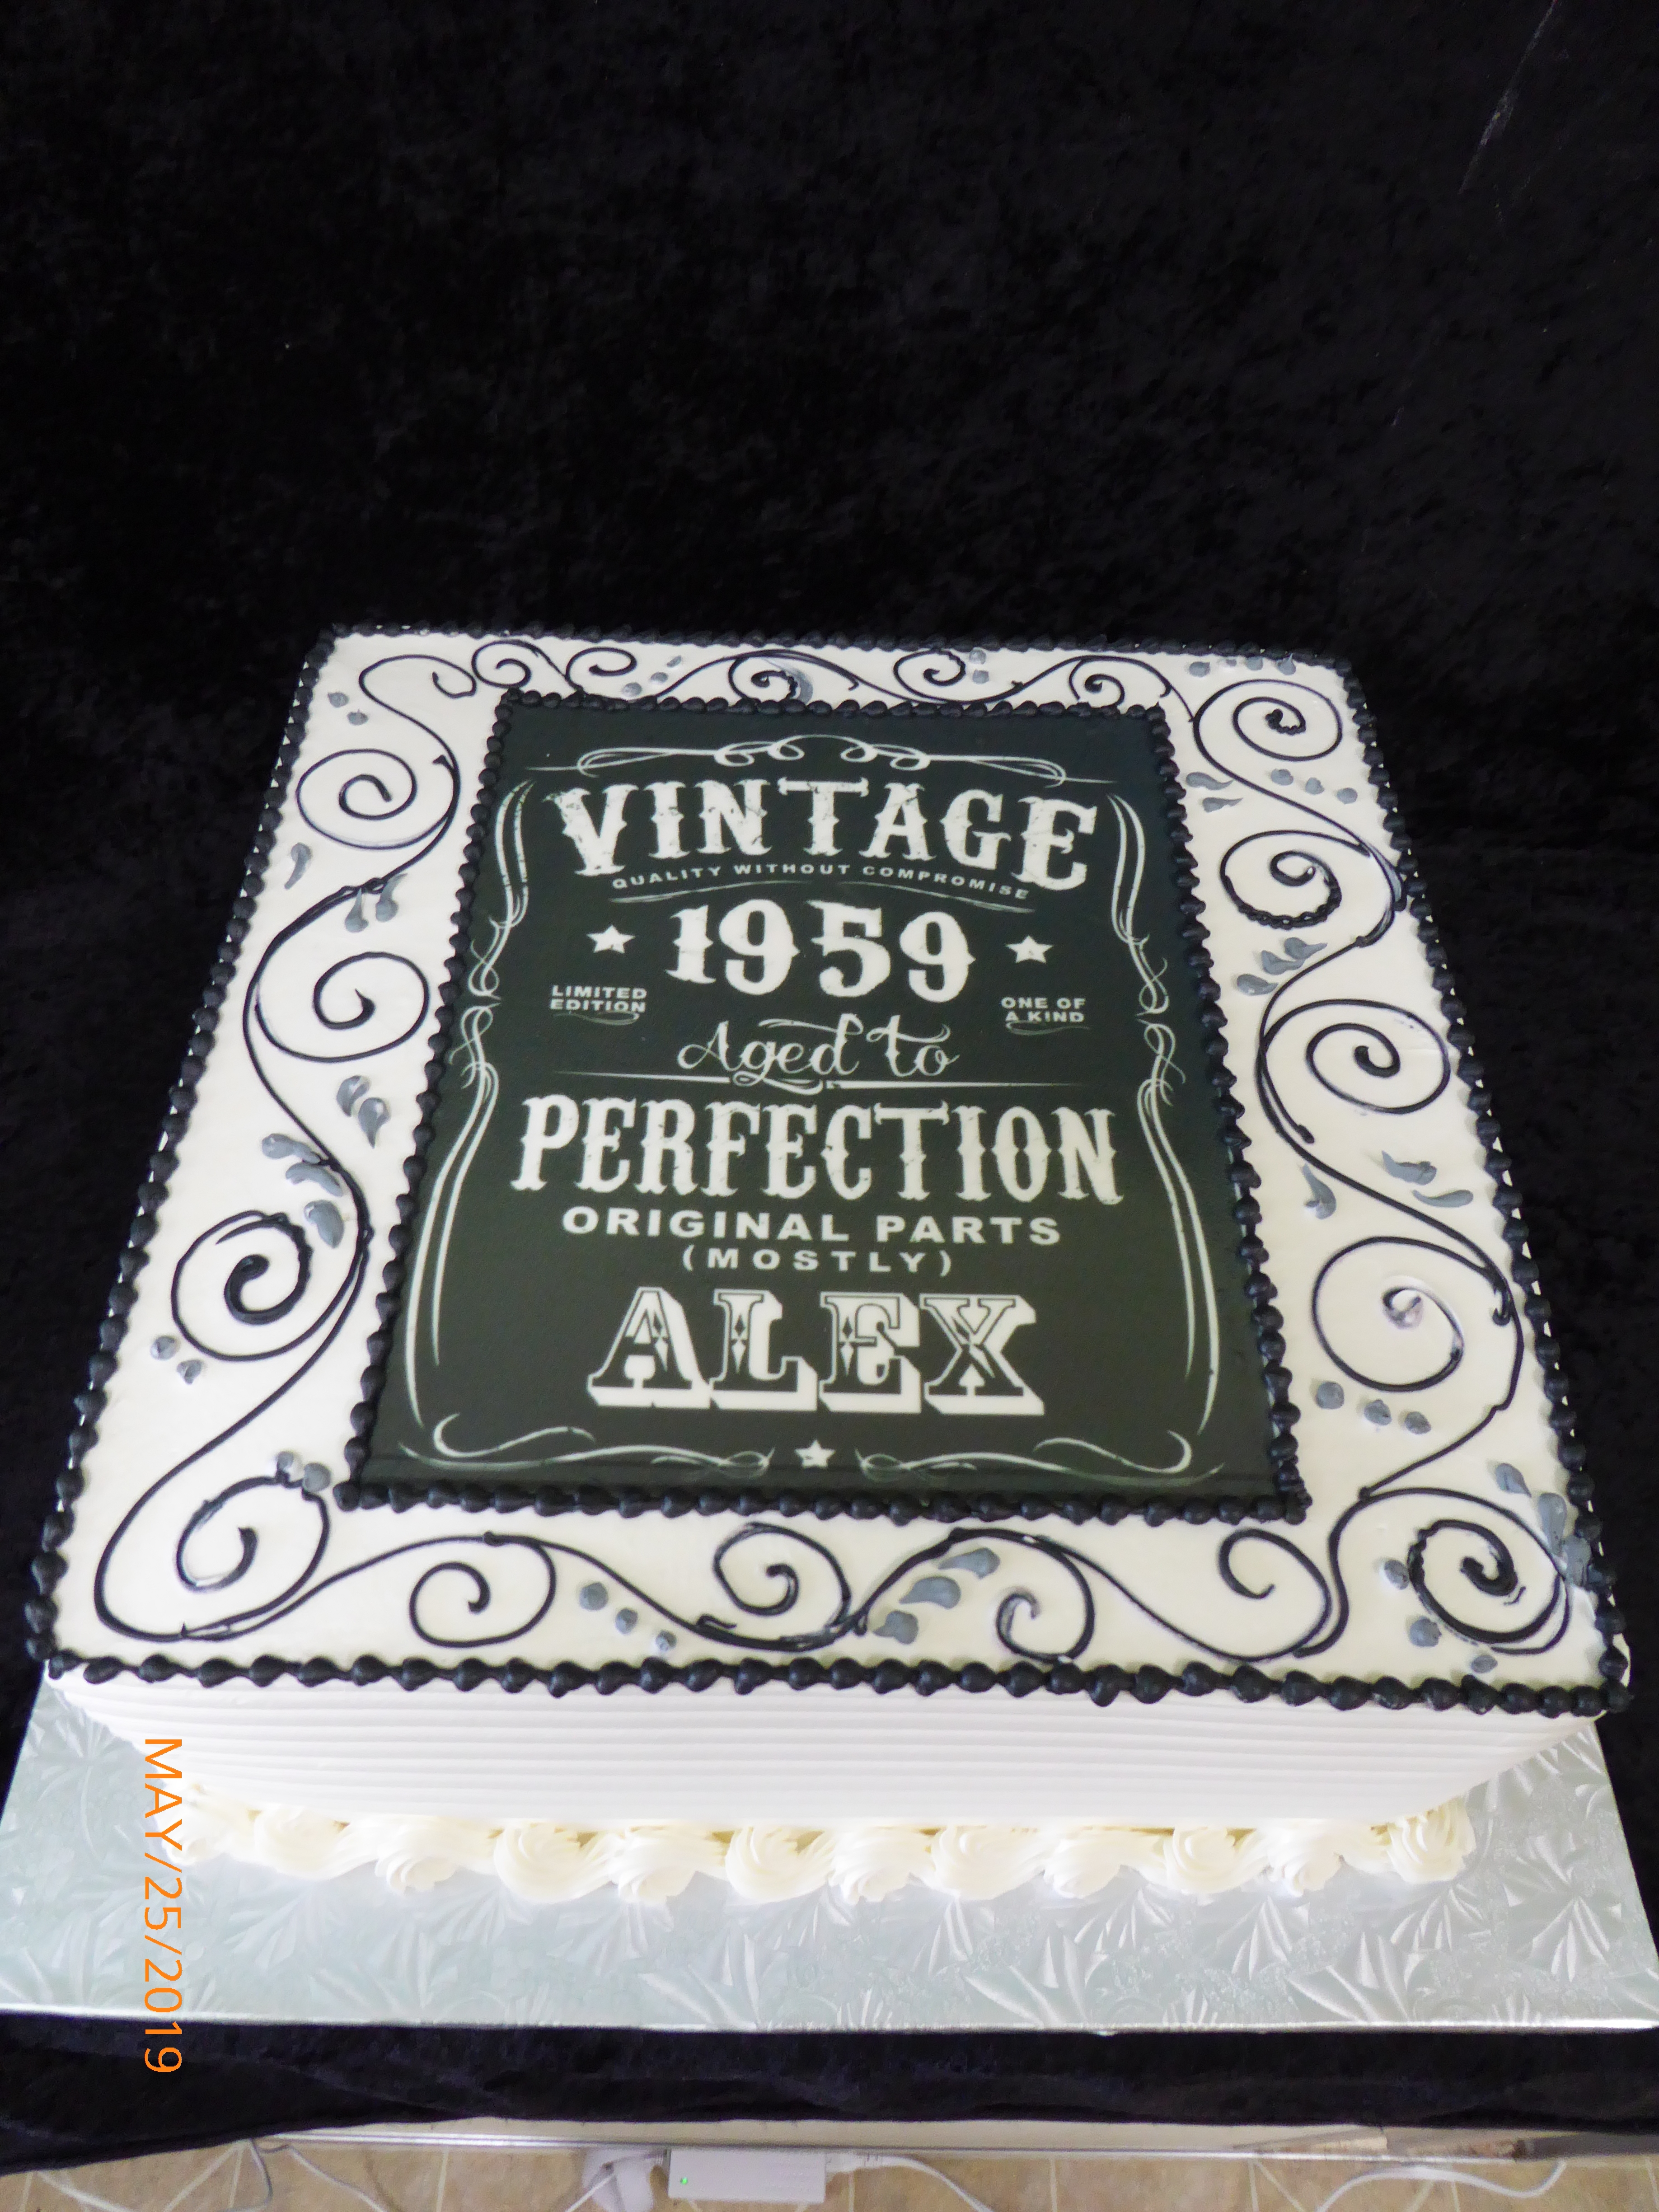 3396, 60th birthday, sixtieth birthday, vintage, aged to perfection, black, white, swirl, swirls, jack daniels